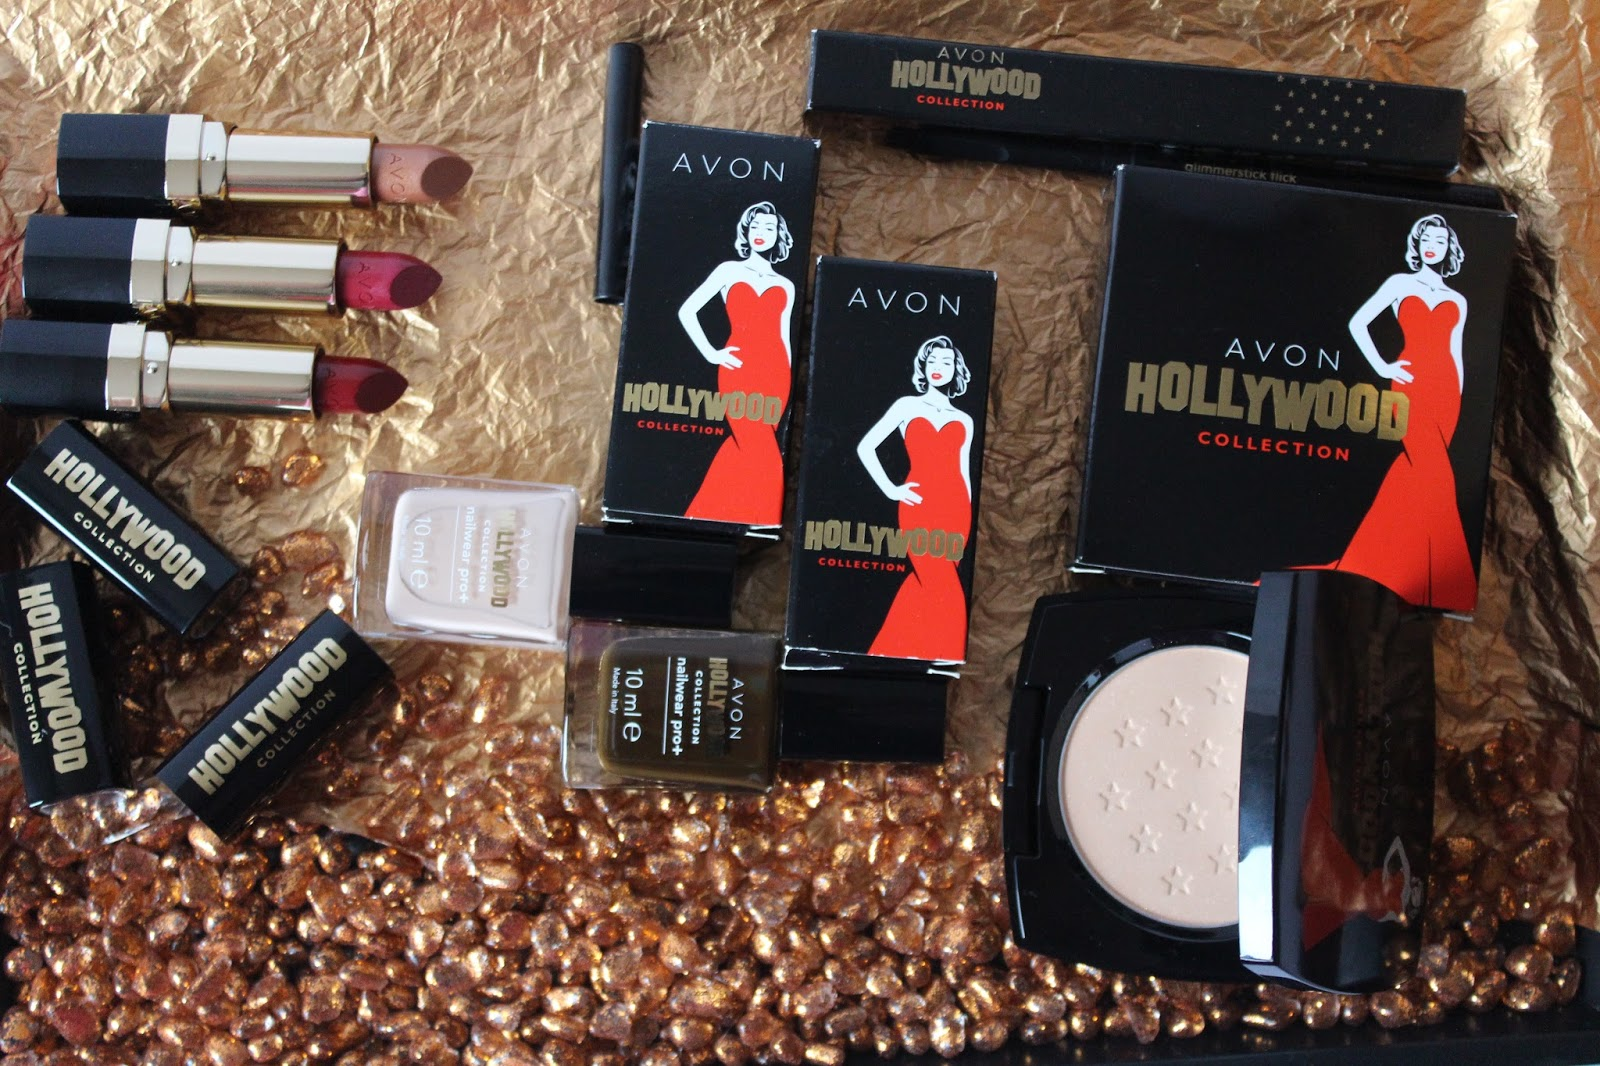 Avon Hollywood kolekcija iz kataloga 15/2014